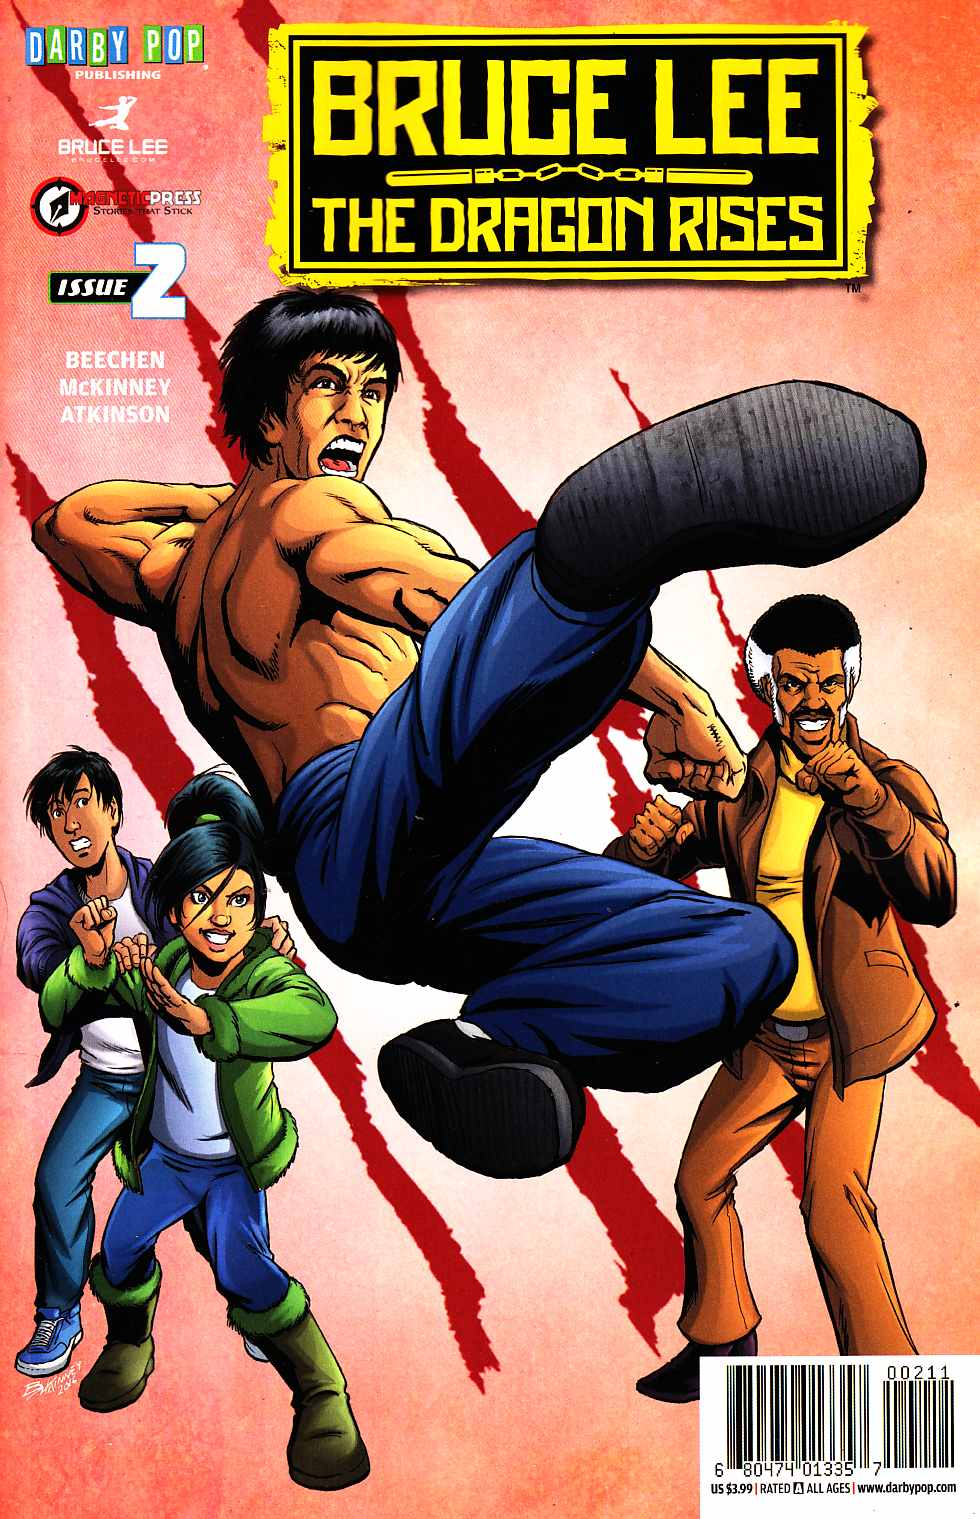 Bruce Lee Dragon Rises #2 Cover A [Darby Pop Comic] THUMBNAIL